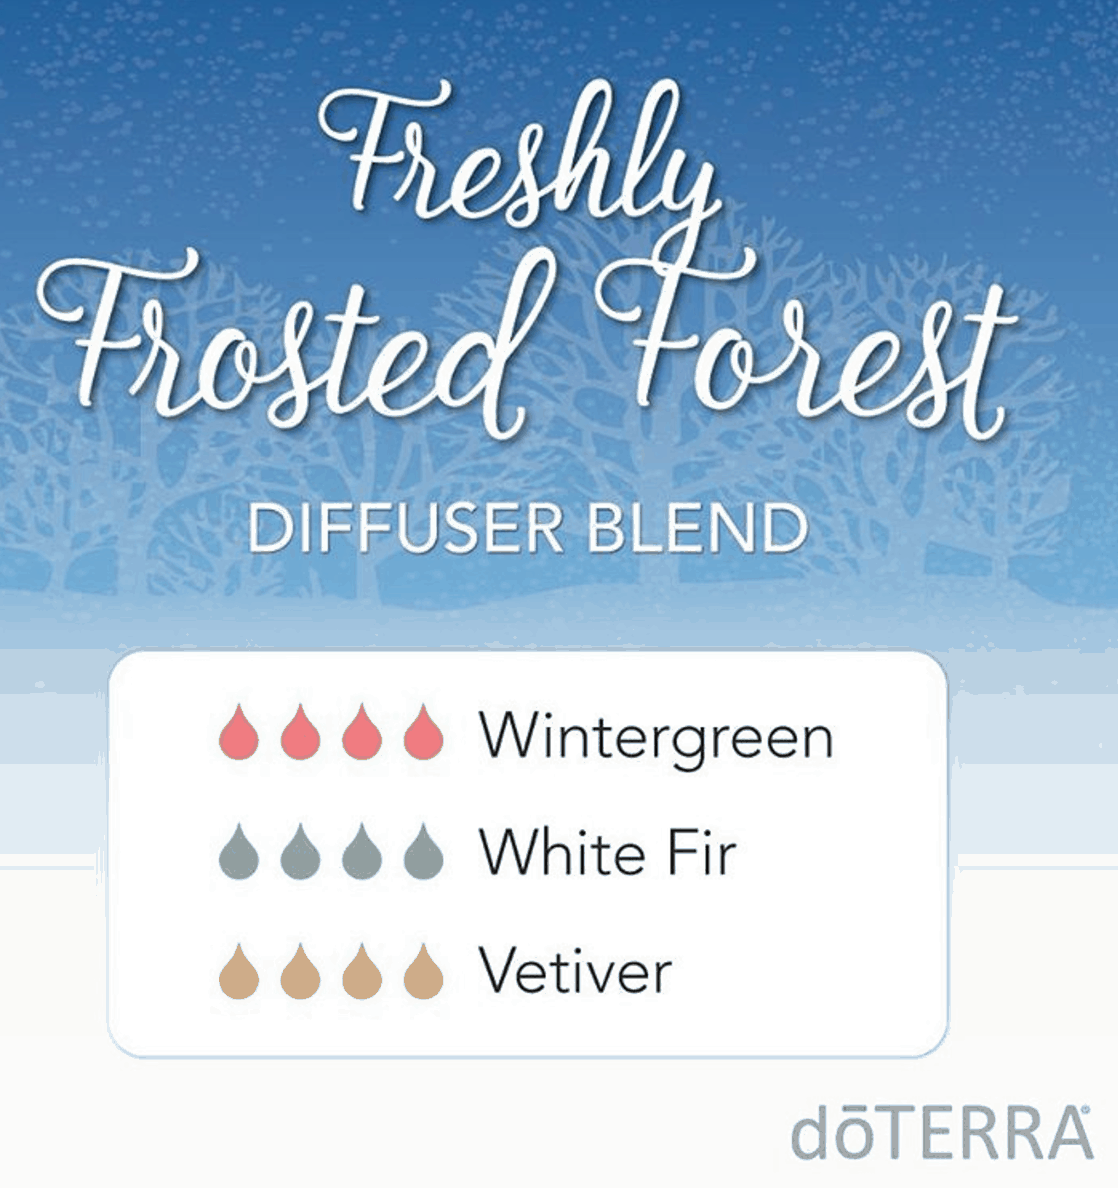 doTERRA Essential Oils Freshly Frosted Forest Diffuser Blend